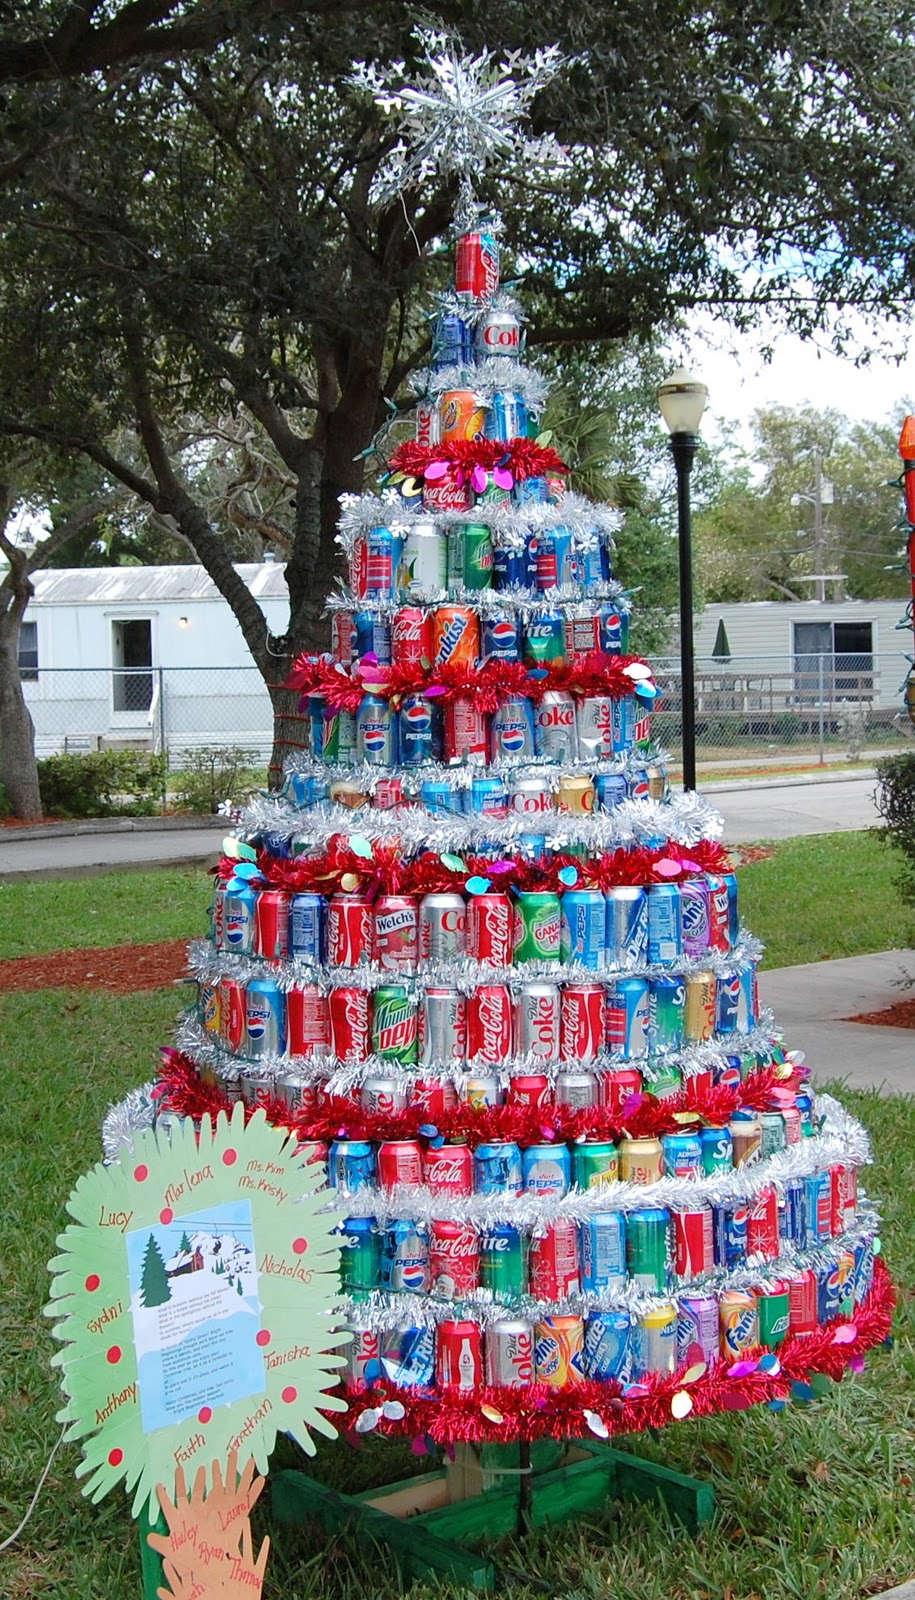 Cute and Sassy Designs by Bonnie: Creative, Artistic Recycled Items Christmas Trees